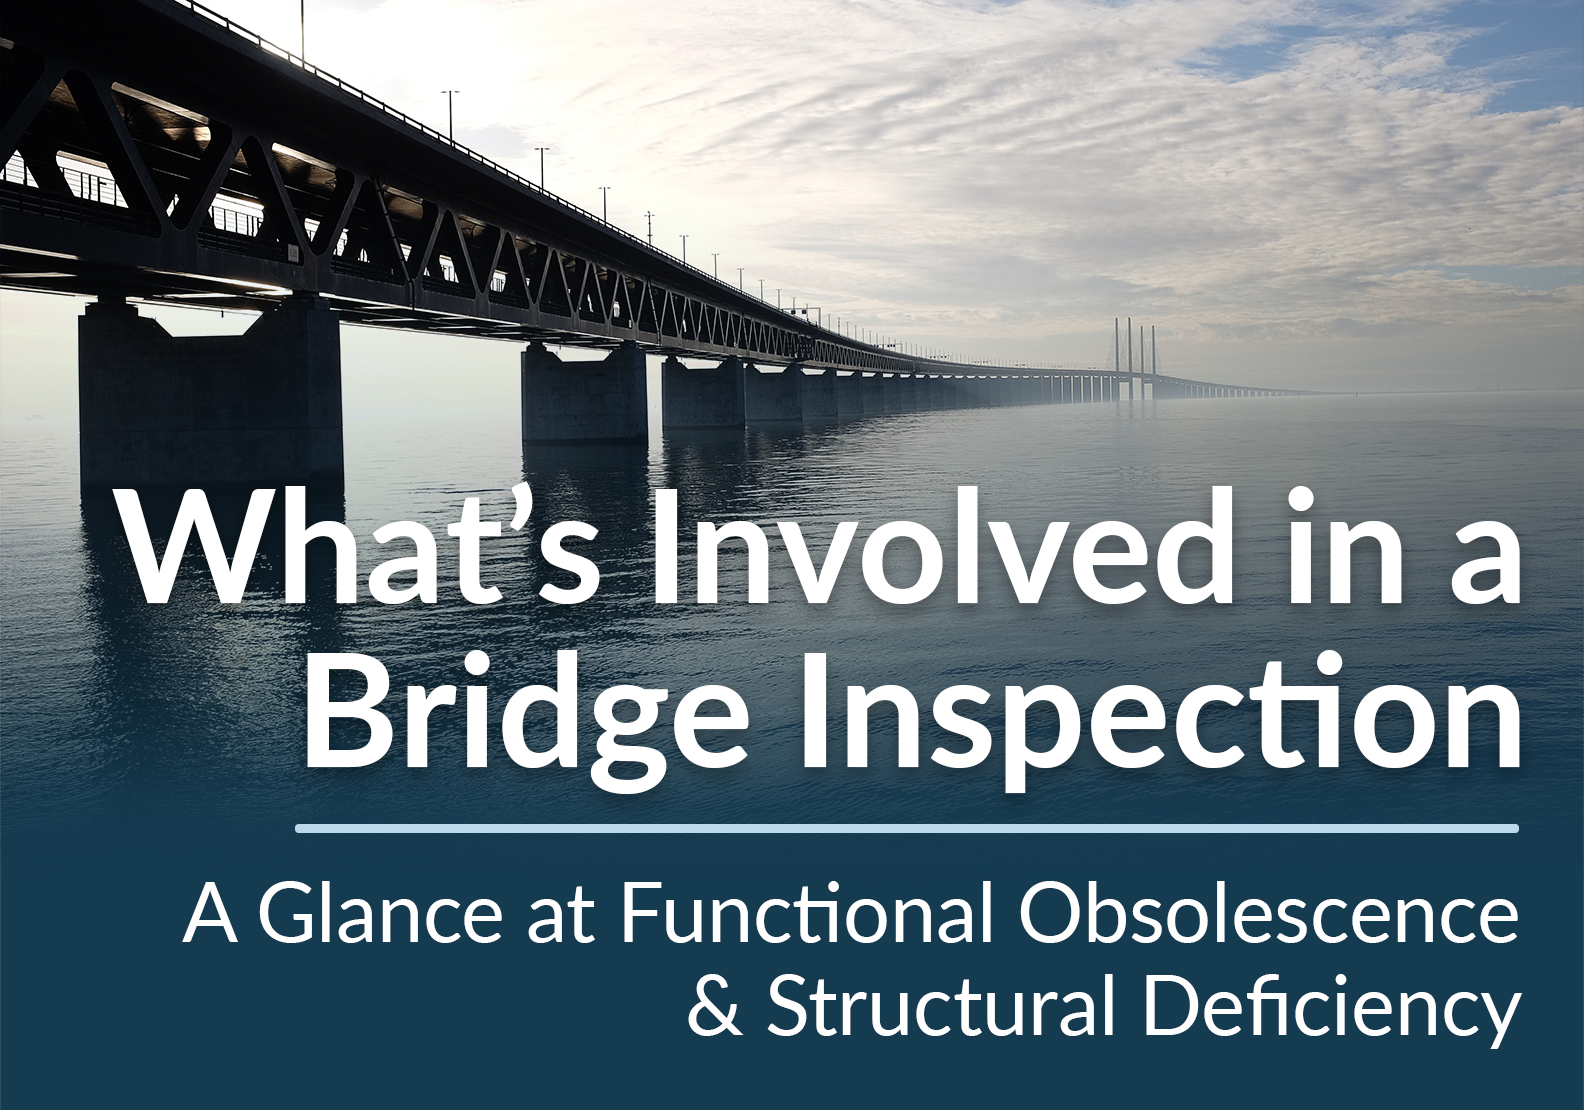 (Aptus) What's Involved in a Bridge Inspection Q3 2018 Infographic Preview